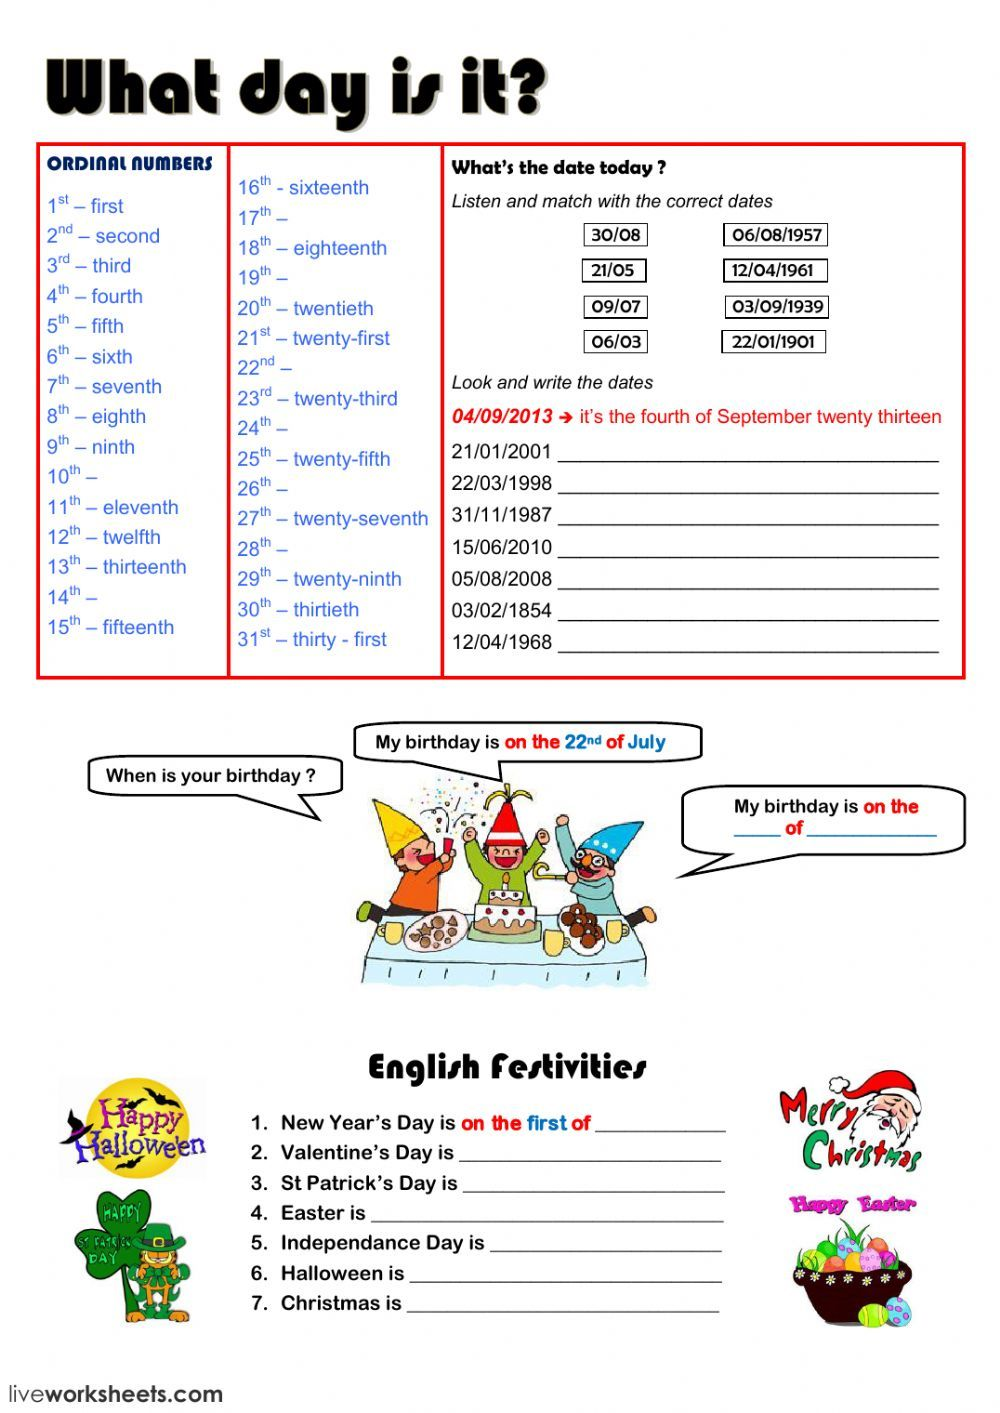 Say The Date Interactive Worksheet English Lessons For Kids English Words Kindergarten Worksheets Printable [ 1413 x 1000 Pixel ]